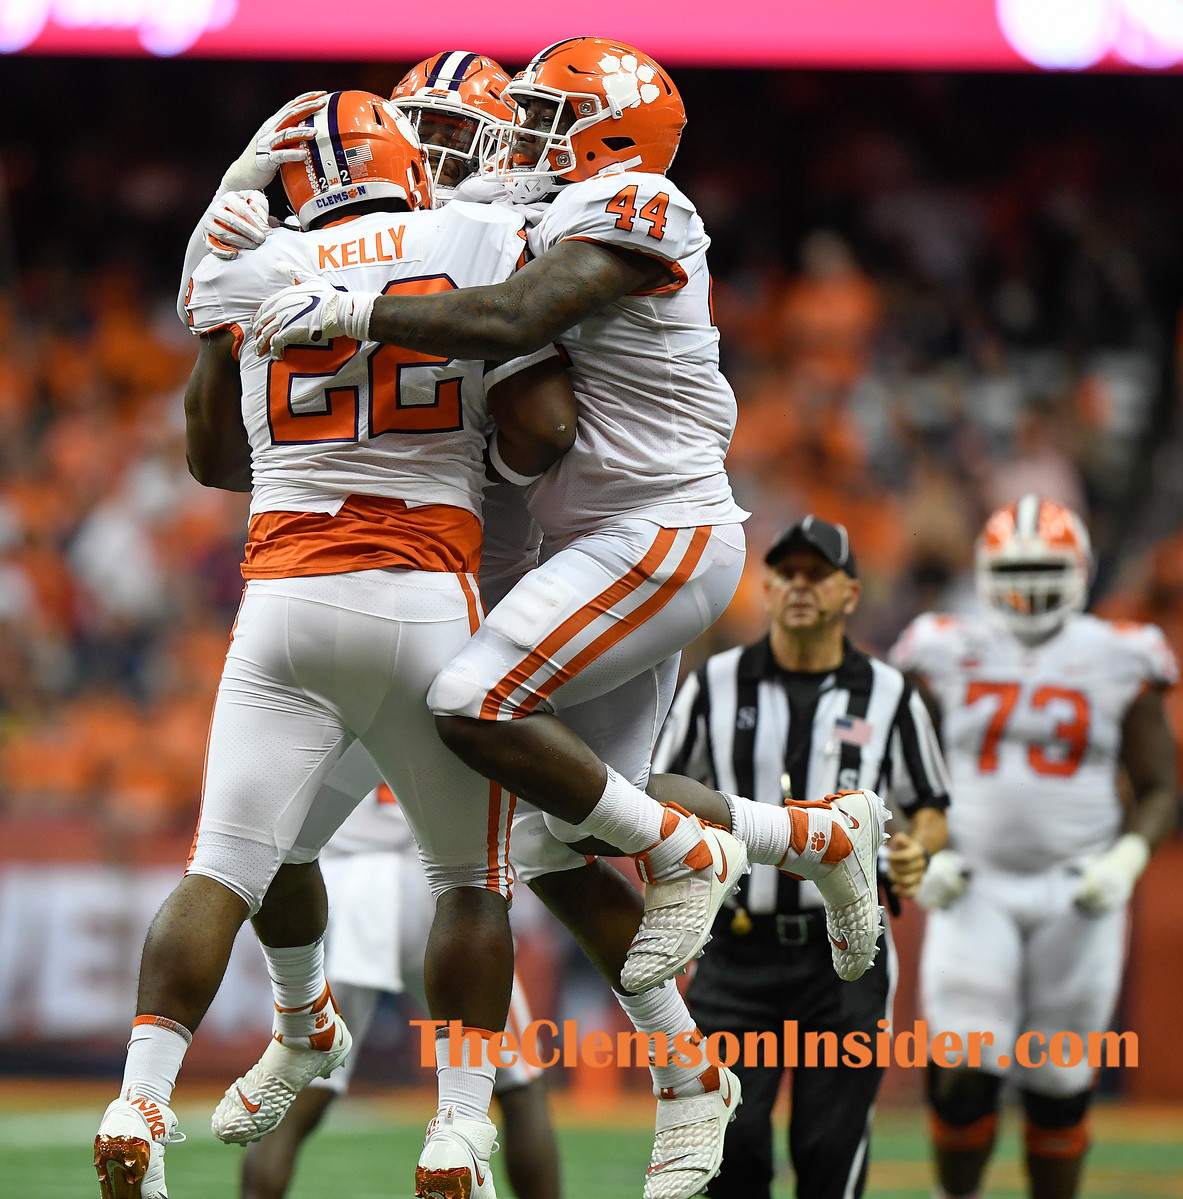 Clemson's defense celebrates after a defensive stop against Syracuse during the 3rd quarter at the Dome in Syracuse, N.Y. Saturday, September 14, 2019. Bart Boatwright/The Clemson Insider